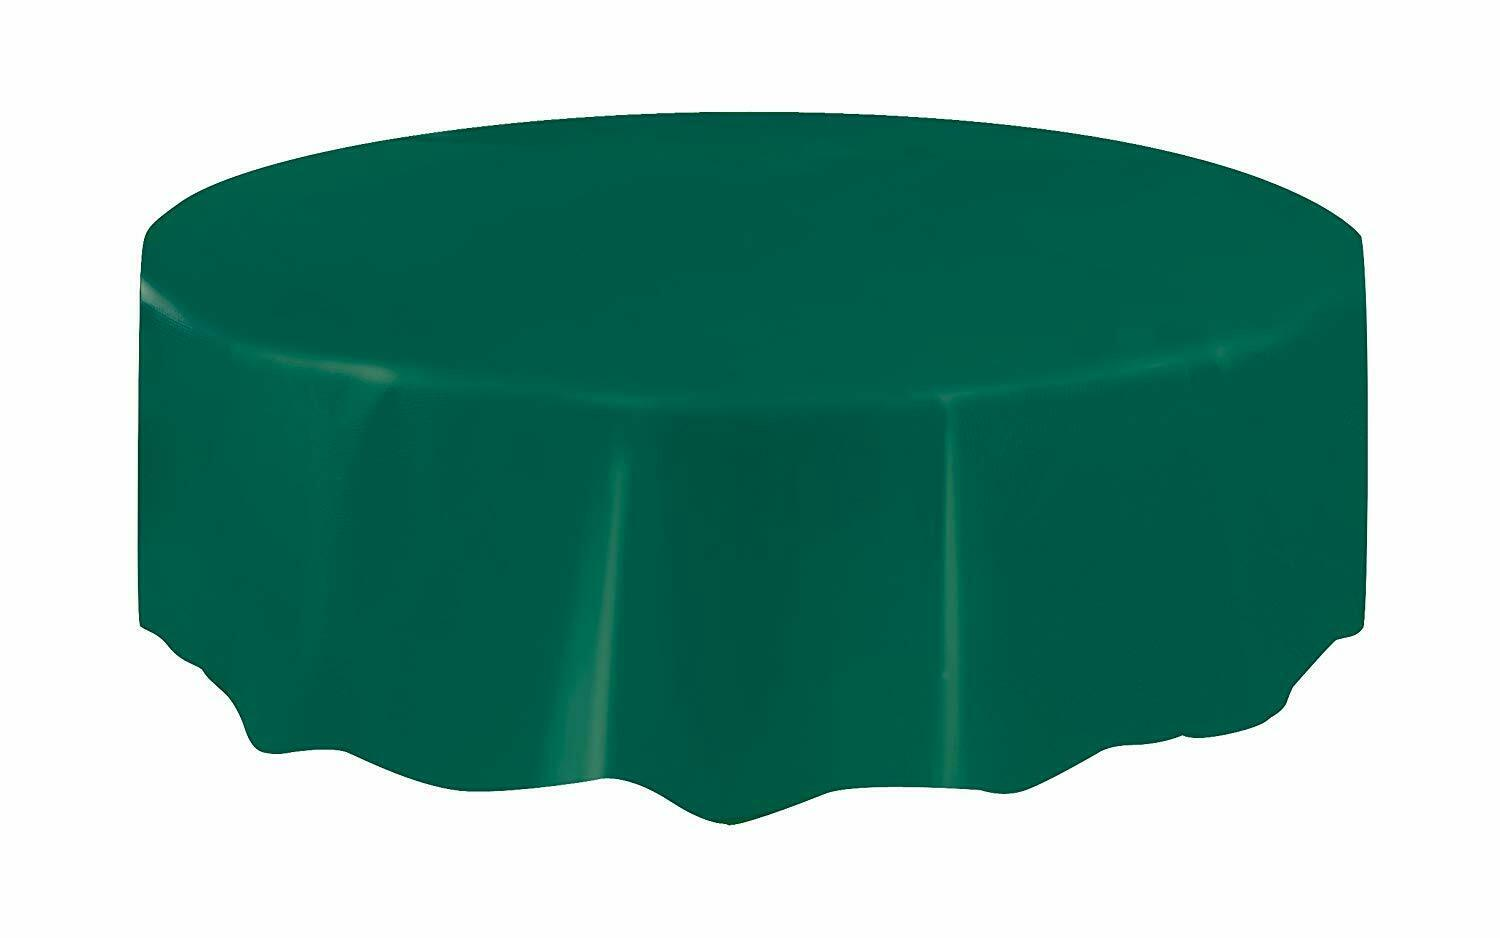 Halloween Party Ideas - Green 7ft (2.13m) Round Plastic Tablecloth Table Cover